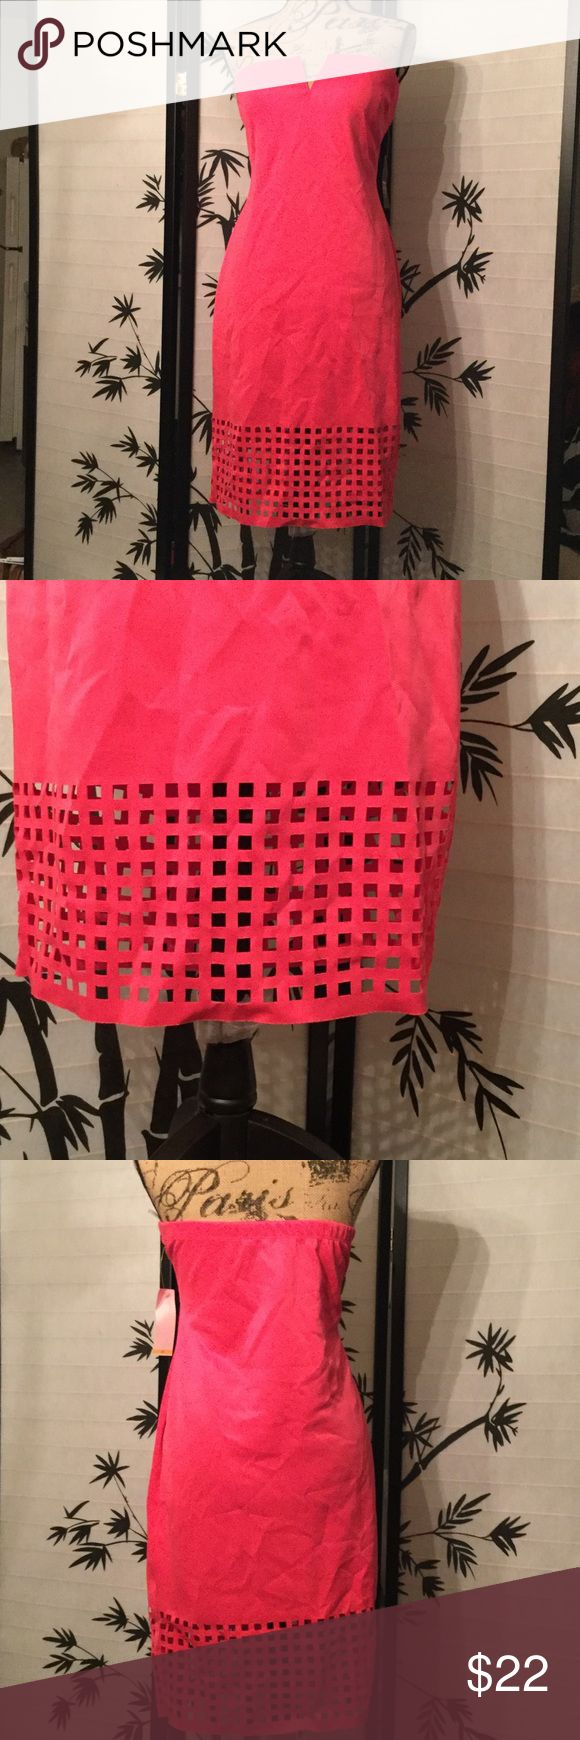 Pretty in Pink Pretty in Hot pink bon con type mini dress strapless net type design at the bottom Fashion to Figure Dresses Strapless